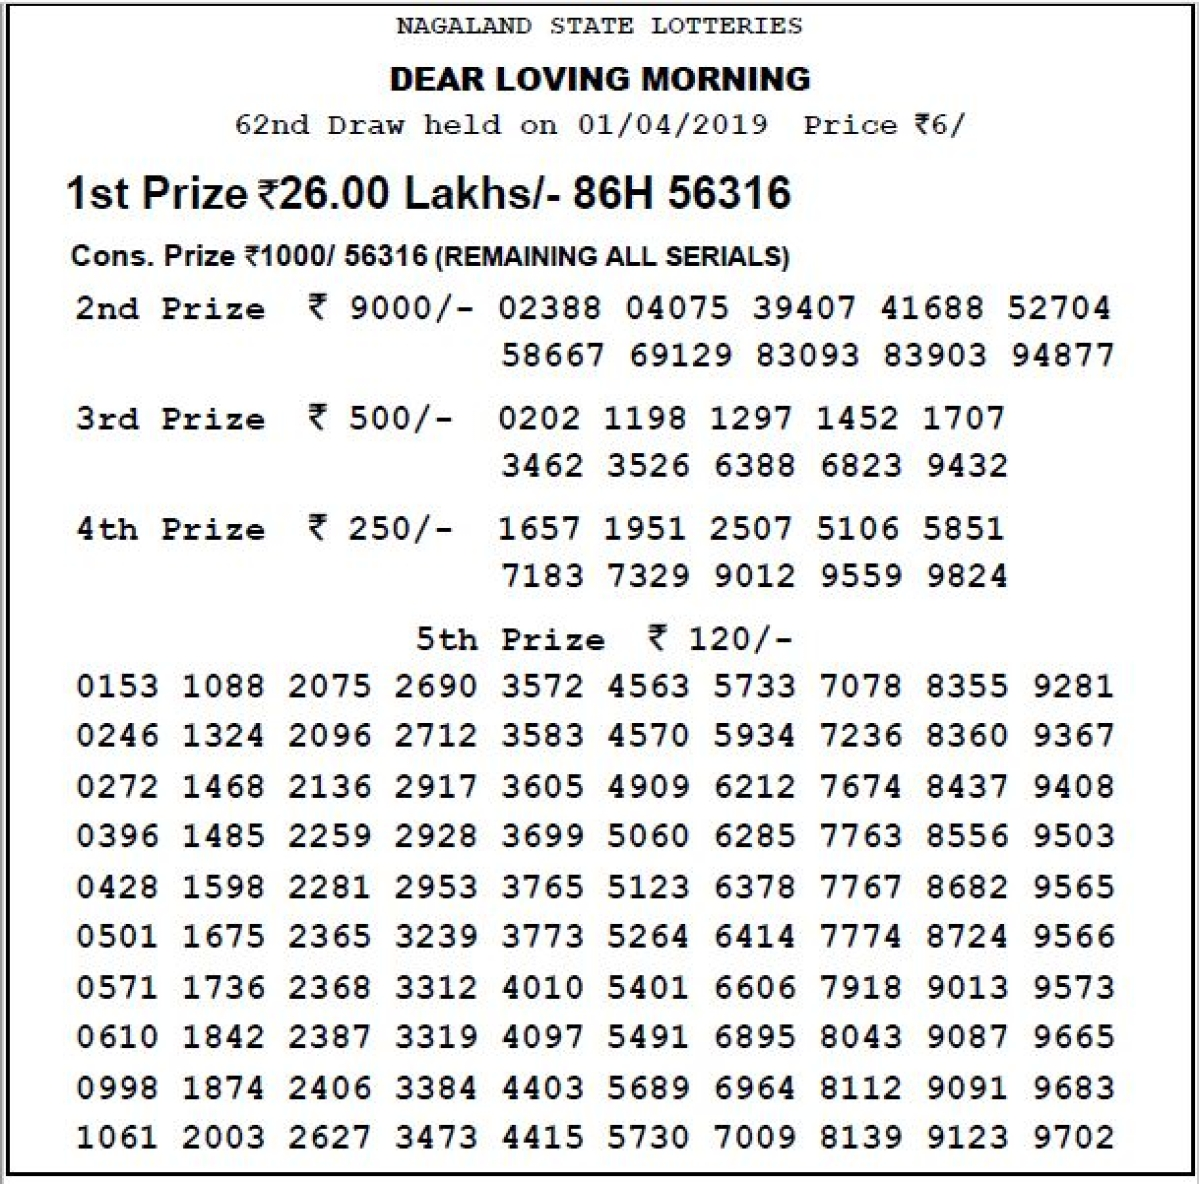 Lottery Sambad Today Result 2 4 19 Live, Nagaland State Lotteries